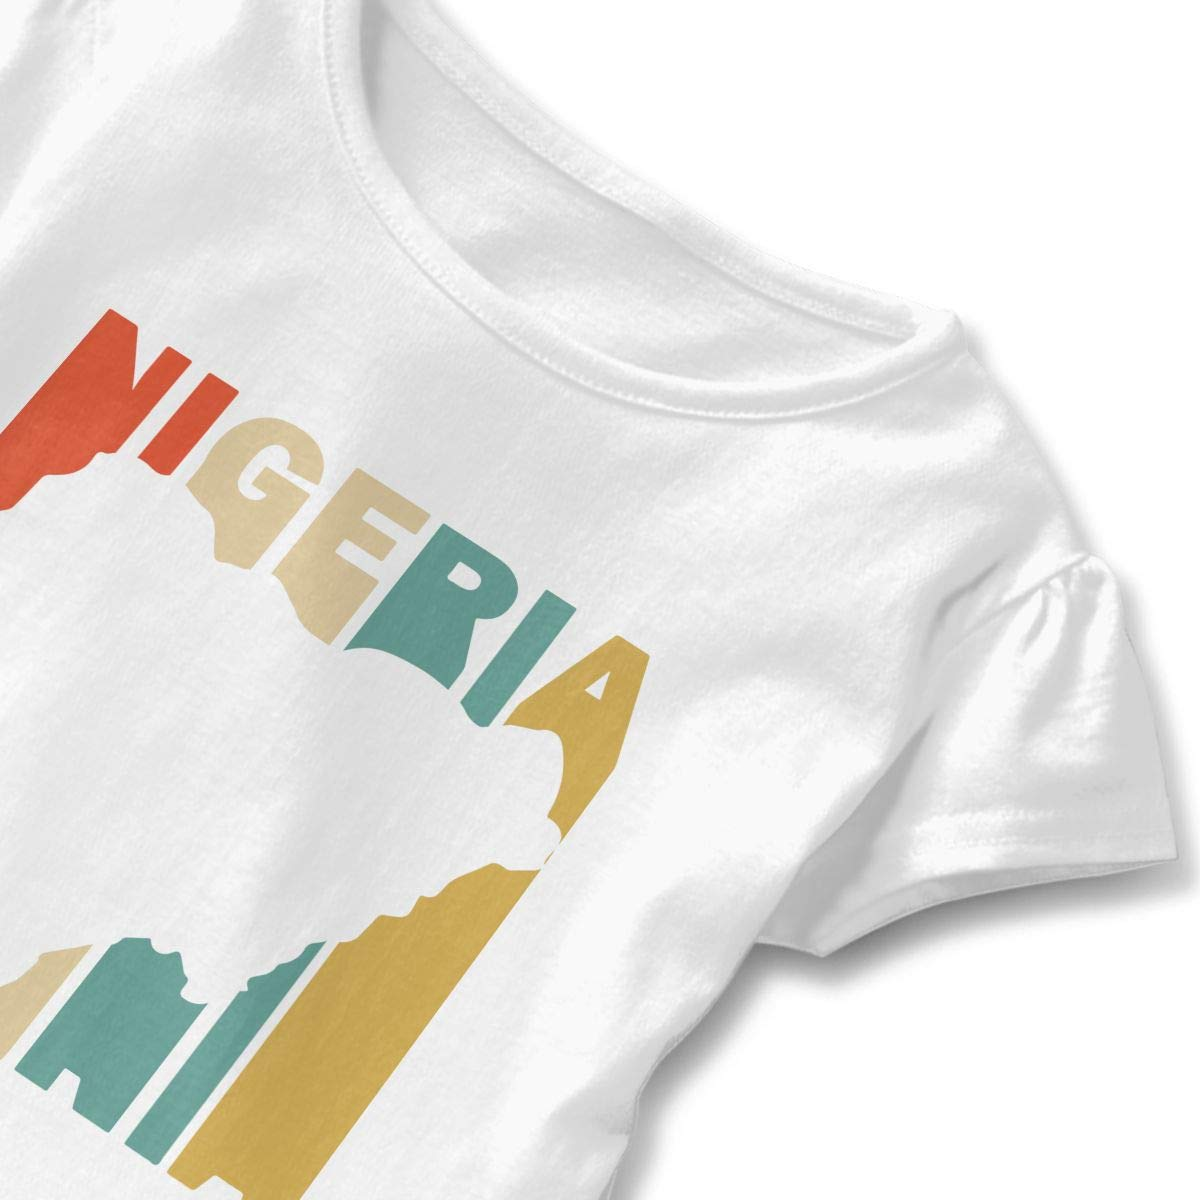 Little Girls Retro Style Nigeria Silhouette Funny Short Sleeve Cotton T Shirts Basic Tops Tee Clothes